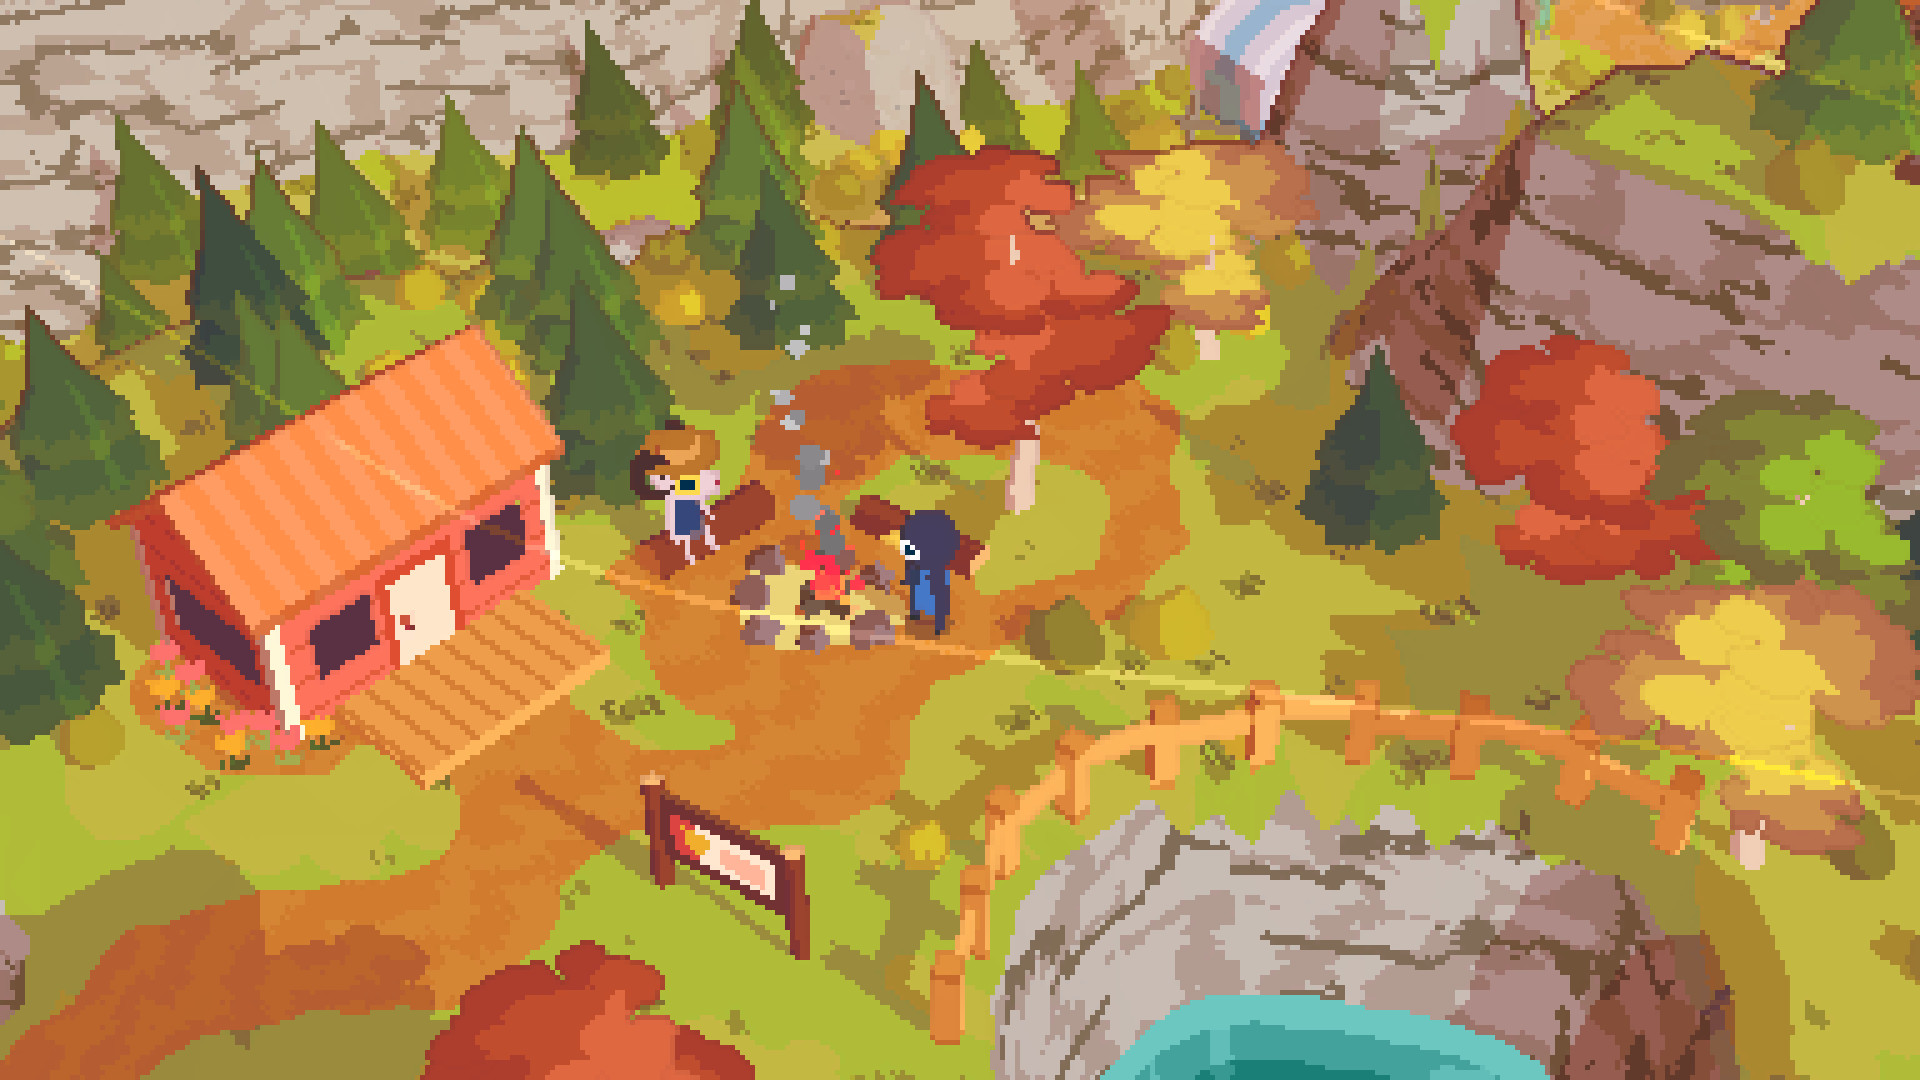 Save 30% on A Short Hike on Steam